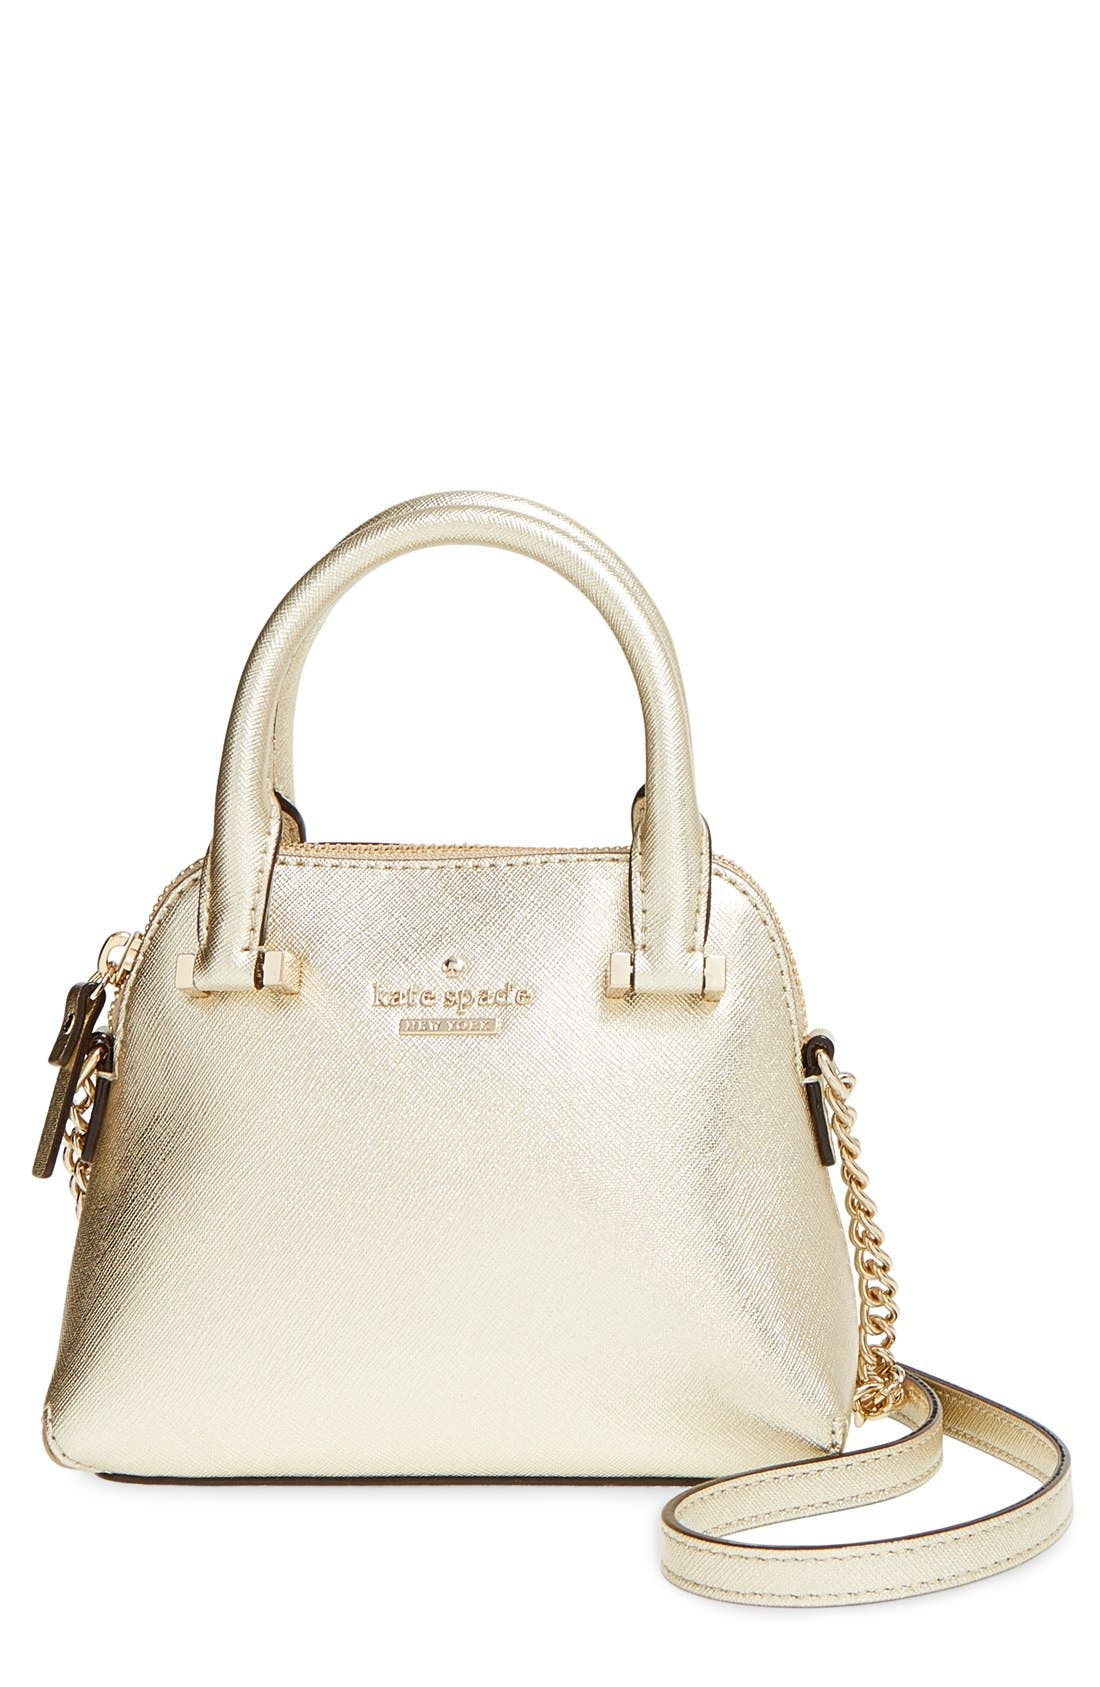 Alternate Image 1 Selected - kate spade new york 'cedar street - mini maise' metallic leather crossbody bag